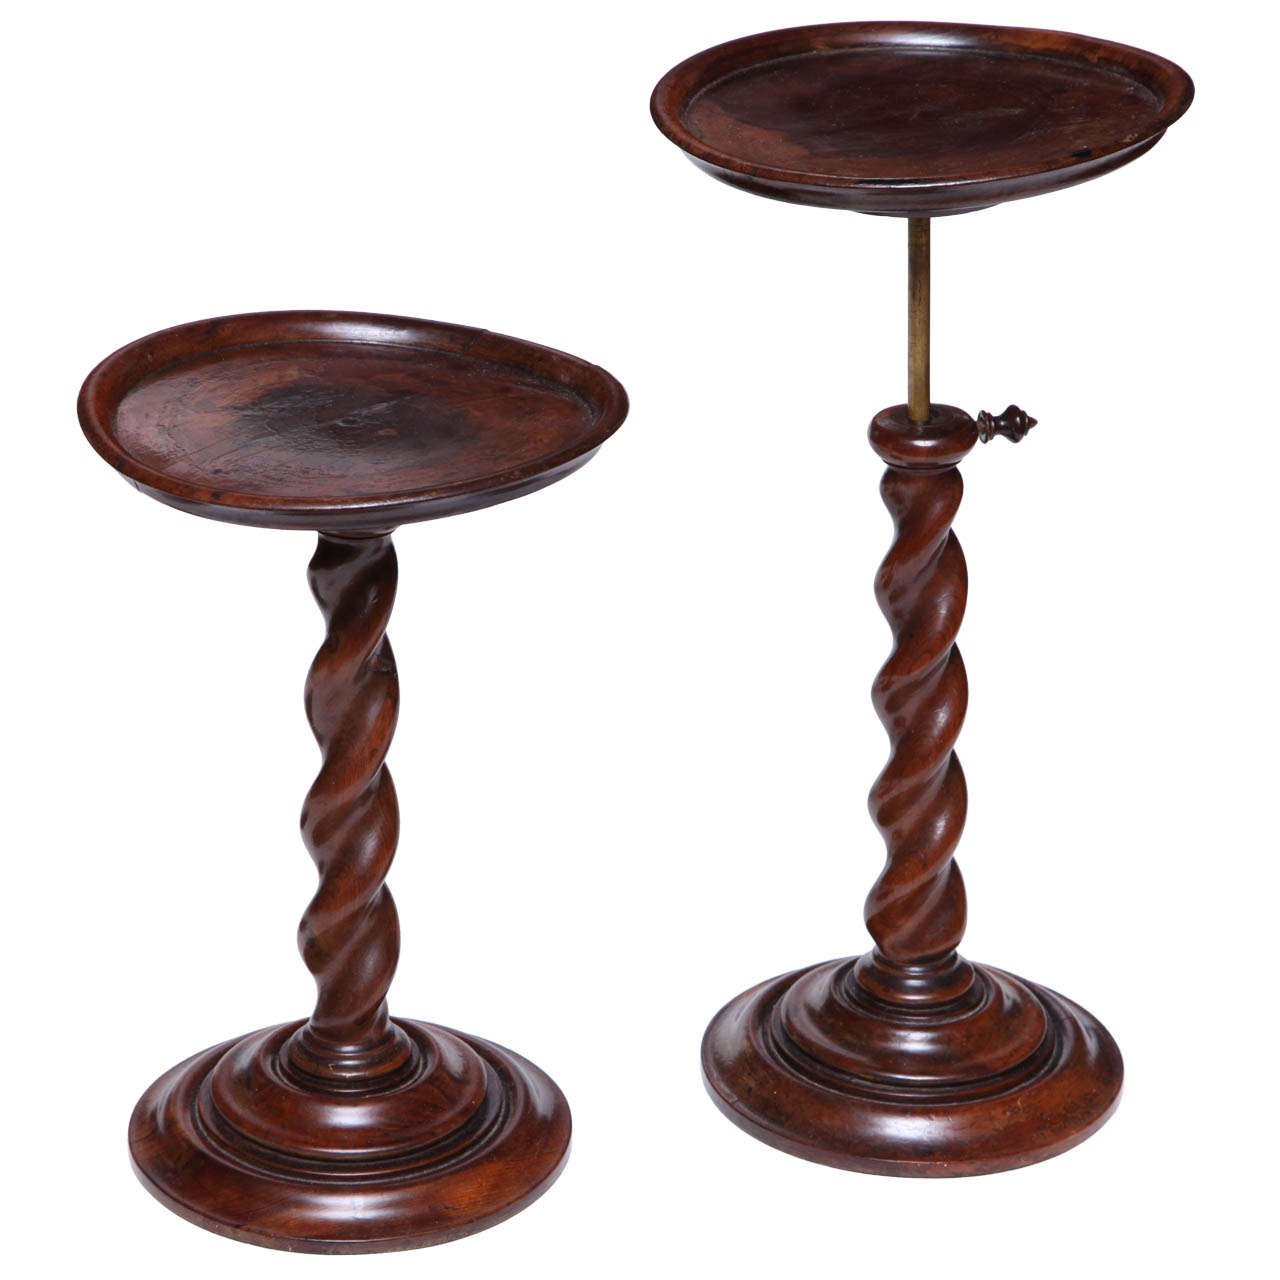 Pair of English Burr Yew Wood Candlestands 1